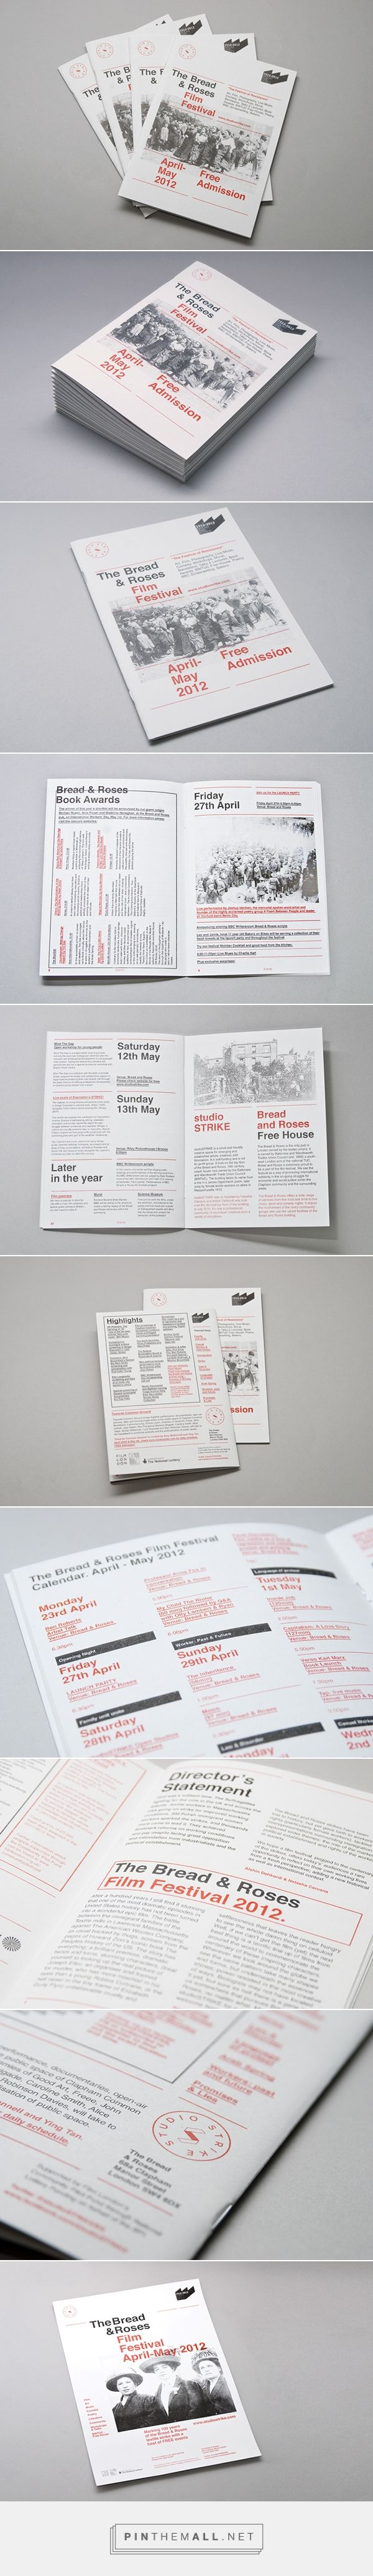 Bread & Roses FIlm Festival London on Behance... - a grouped images picture - Pin Them All